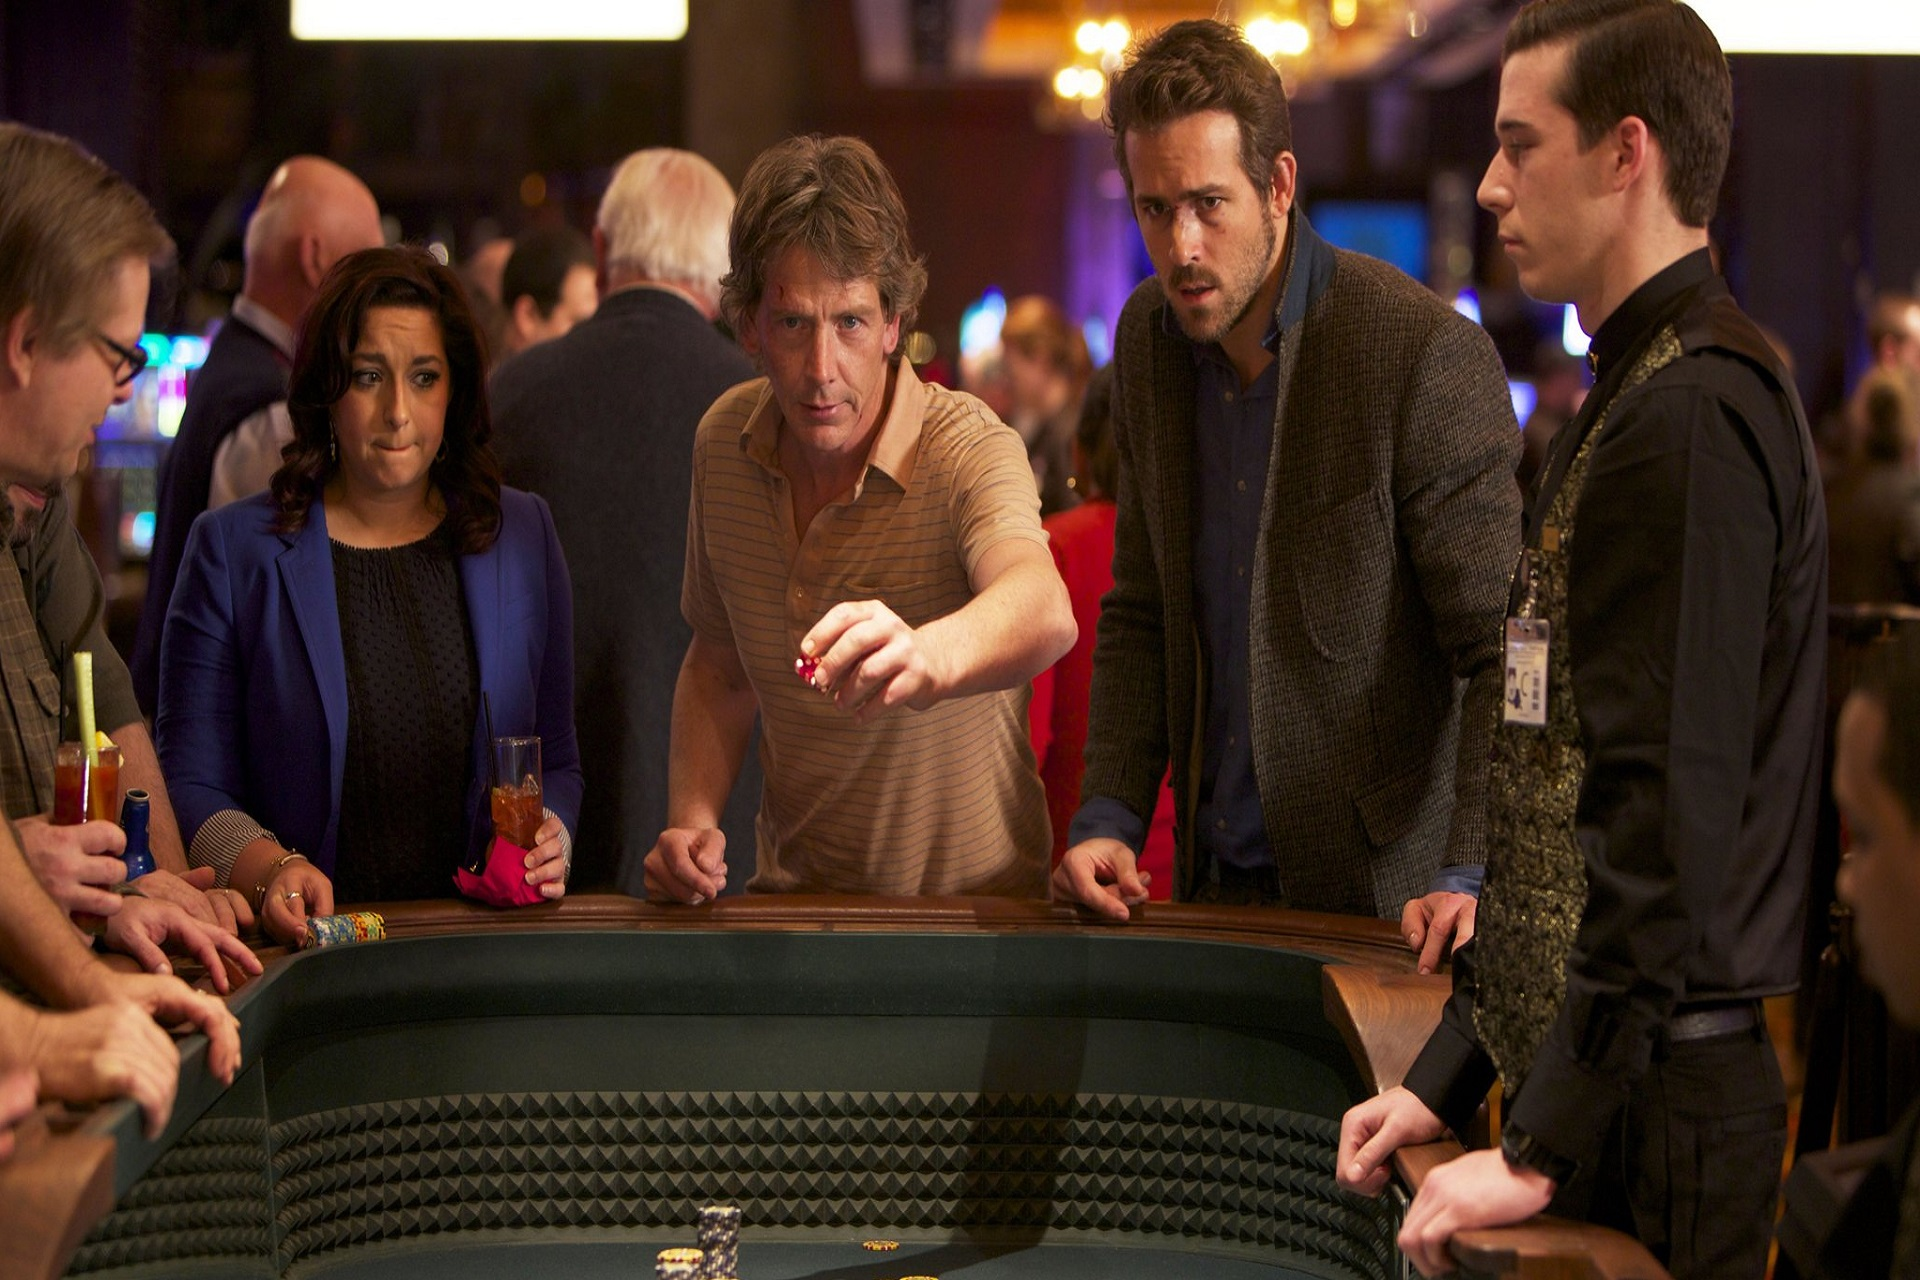 What Are Best Movies About Gambling And Poker Ever Made?